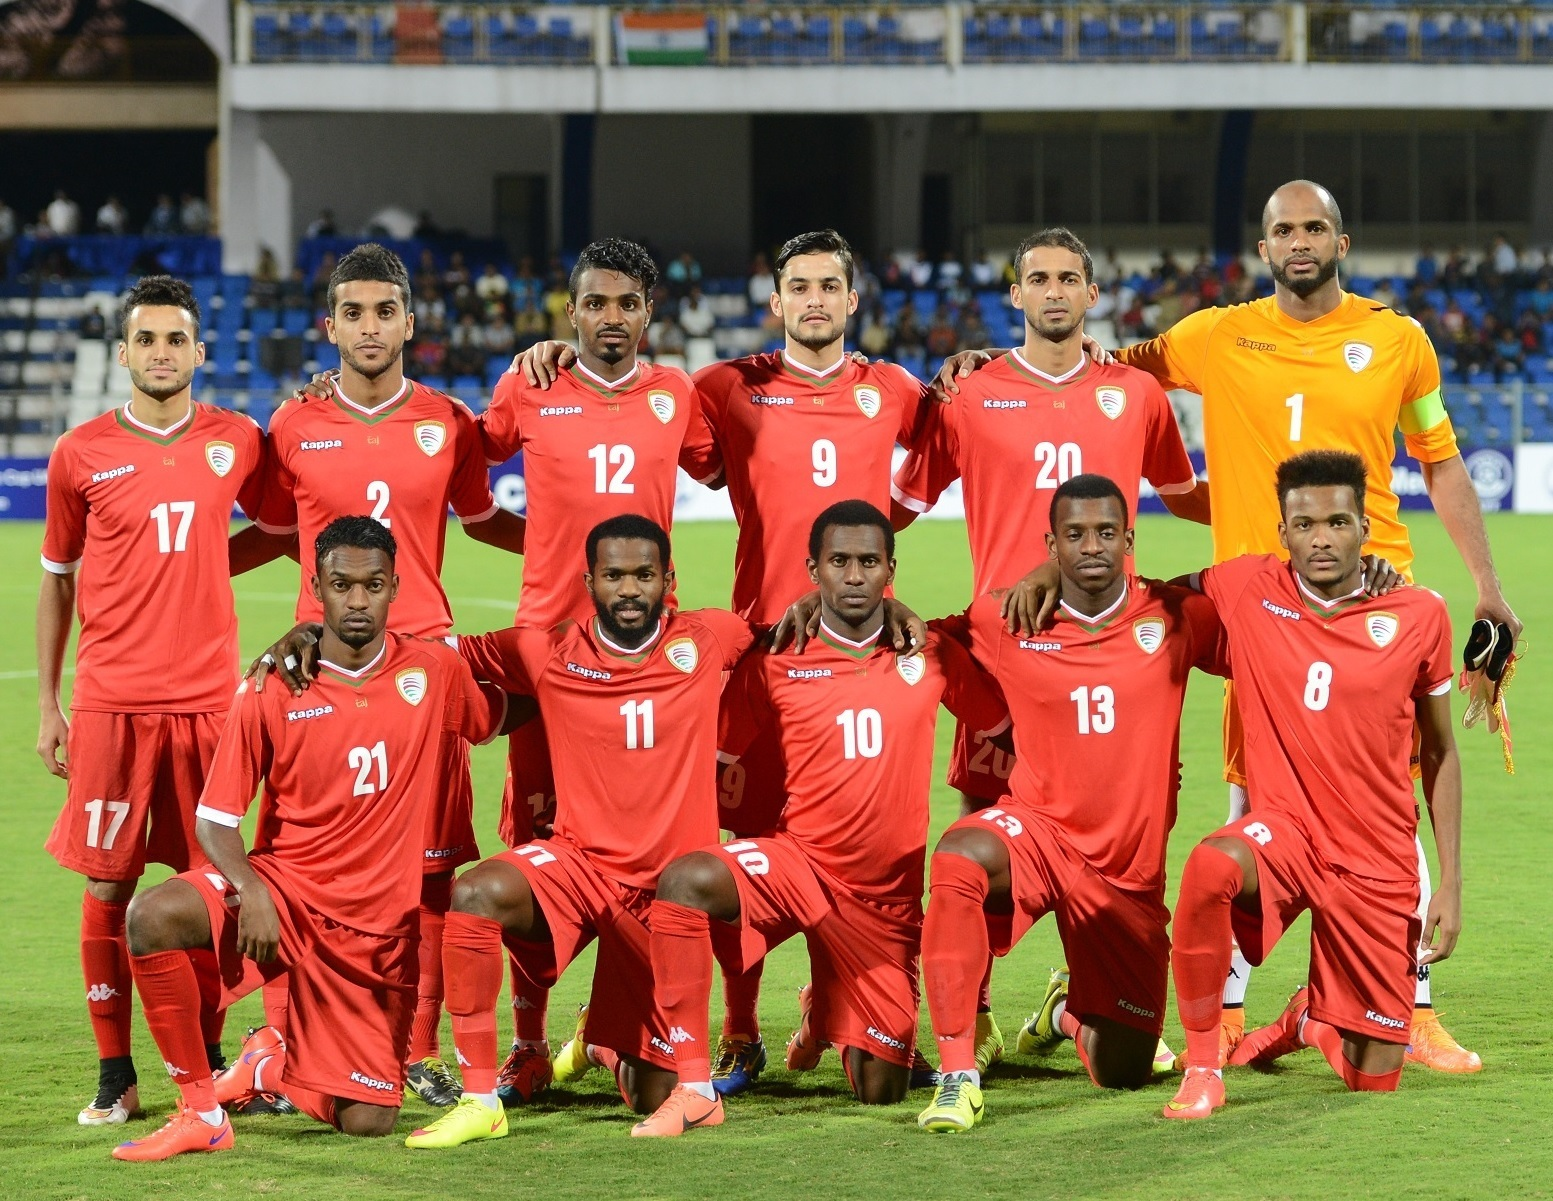 Oman-2015-Kappa-world-cup-qualifier-home-kit-red-red-red-line-up.jpg